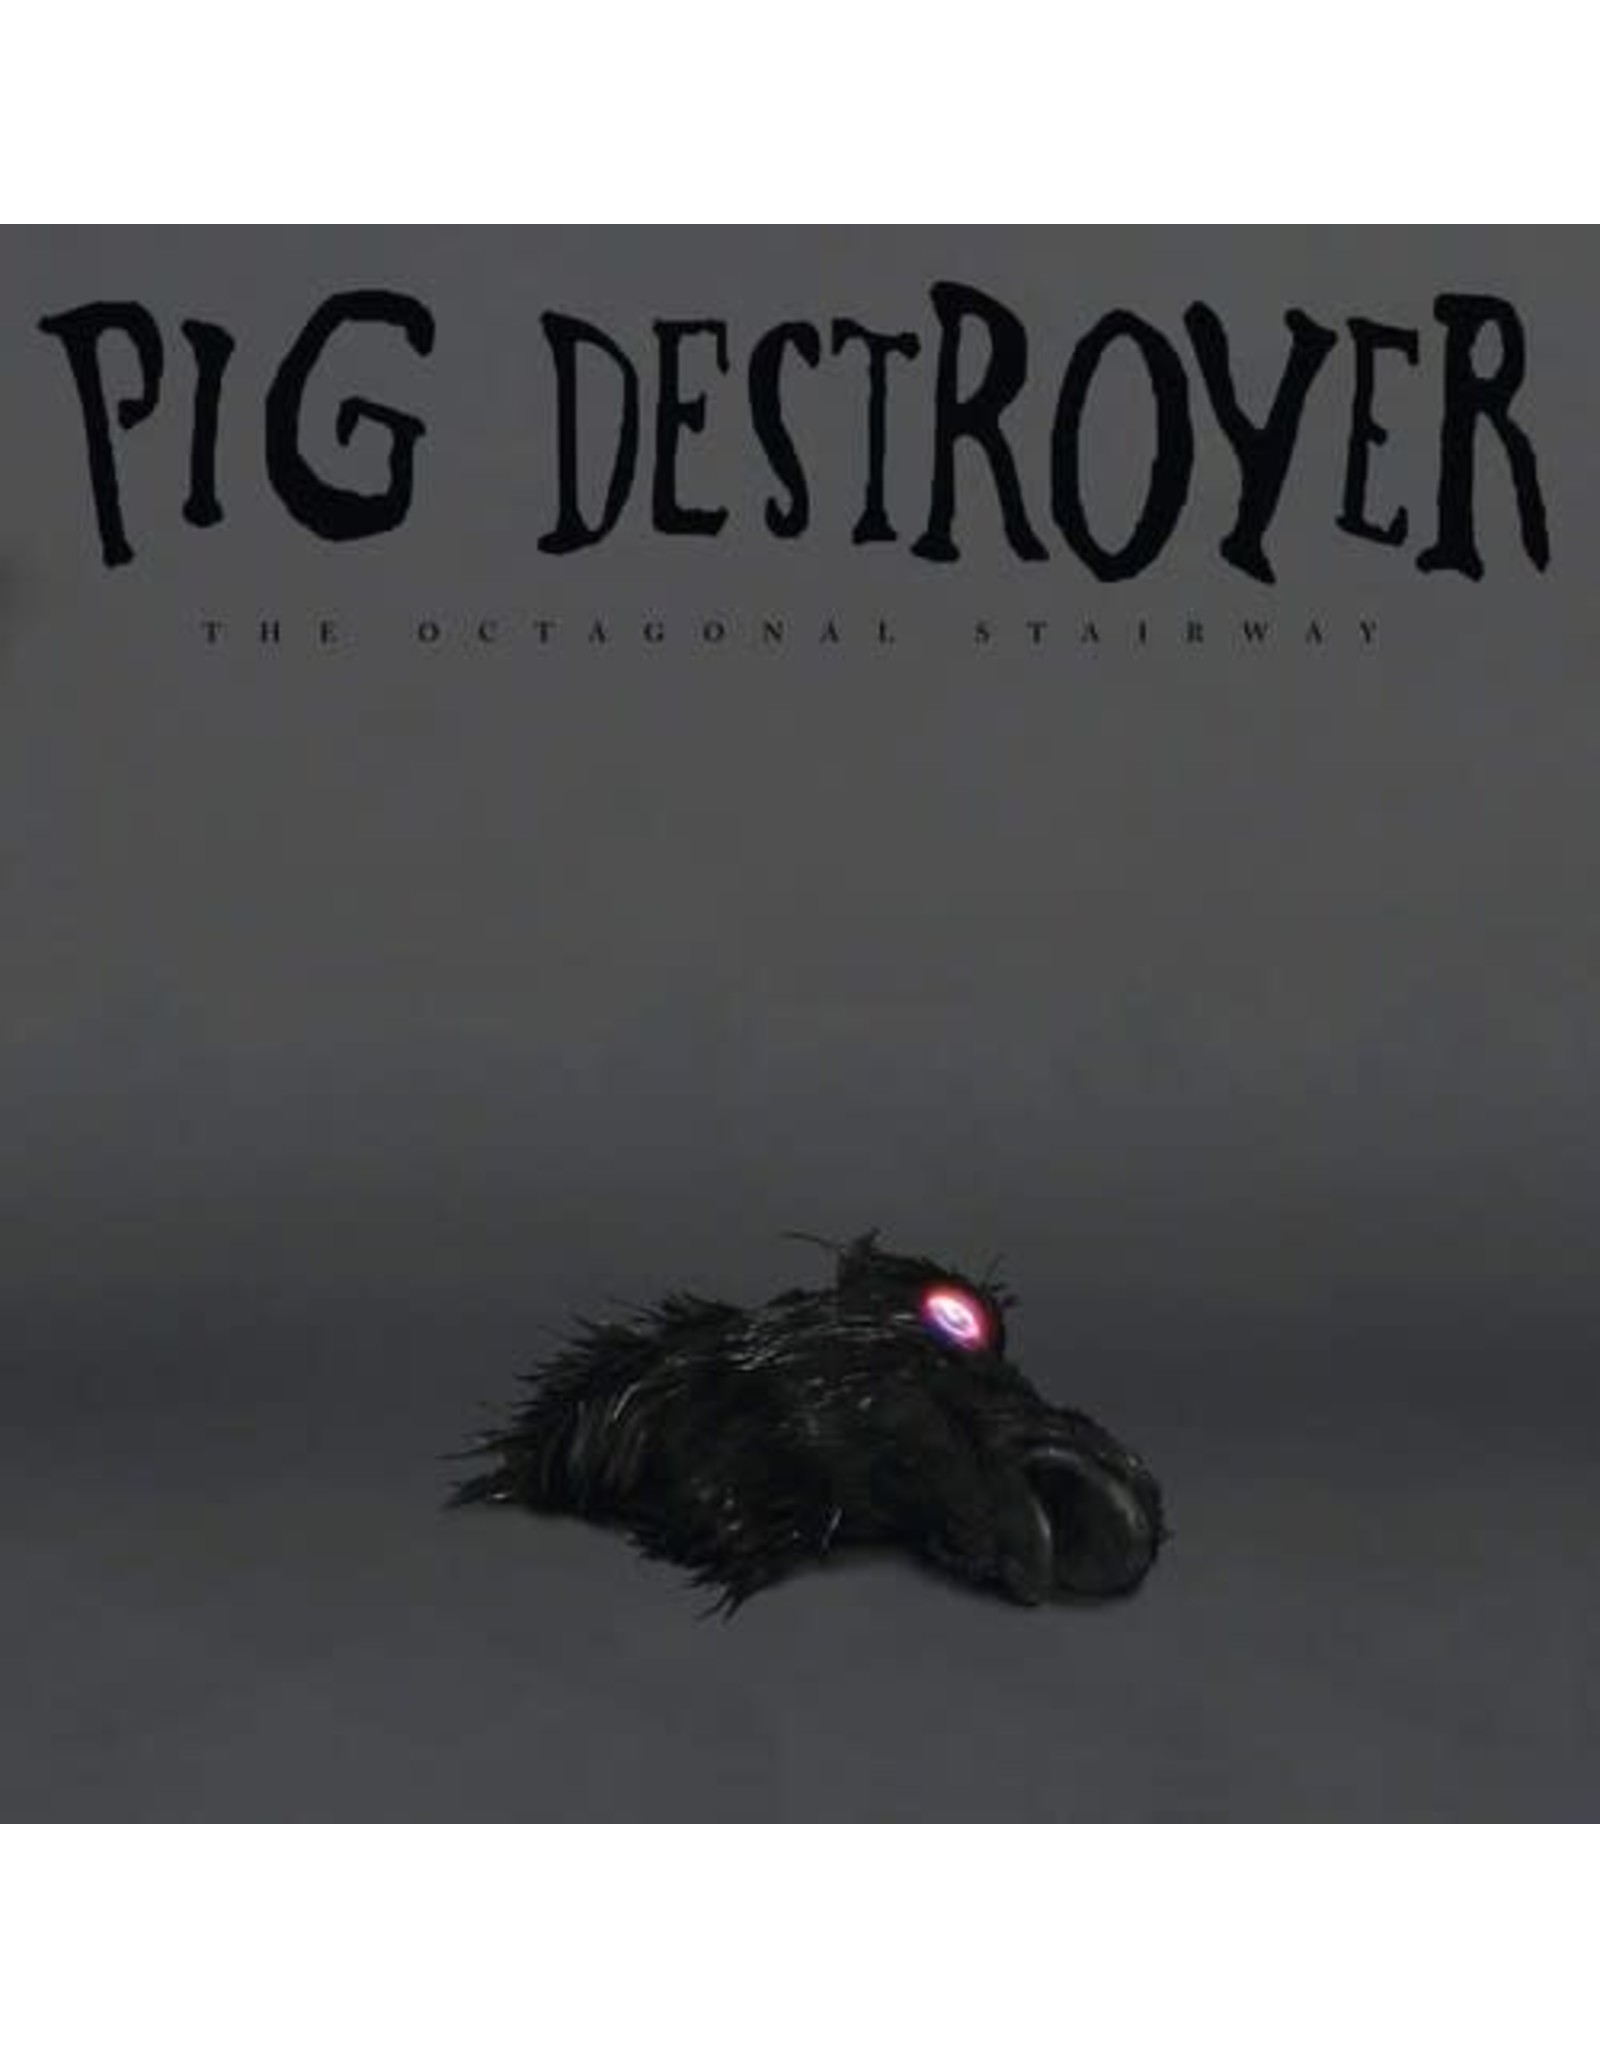 New Vinyl Pig Destroyer - The Octagonal Stairway (Colored) LP